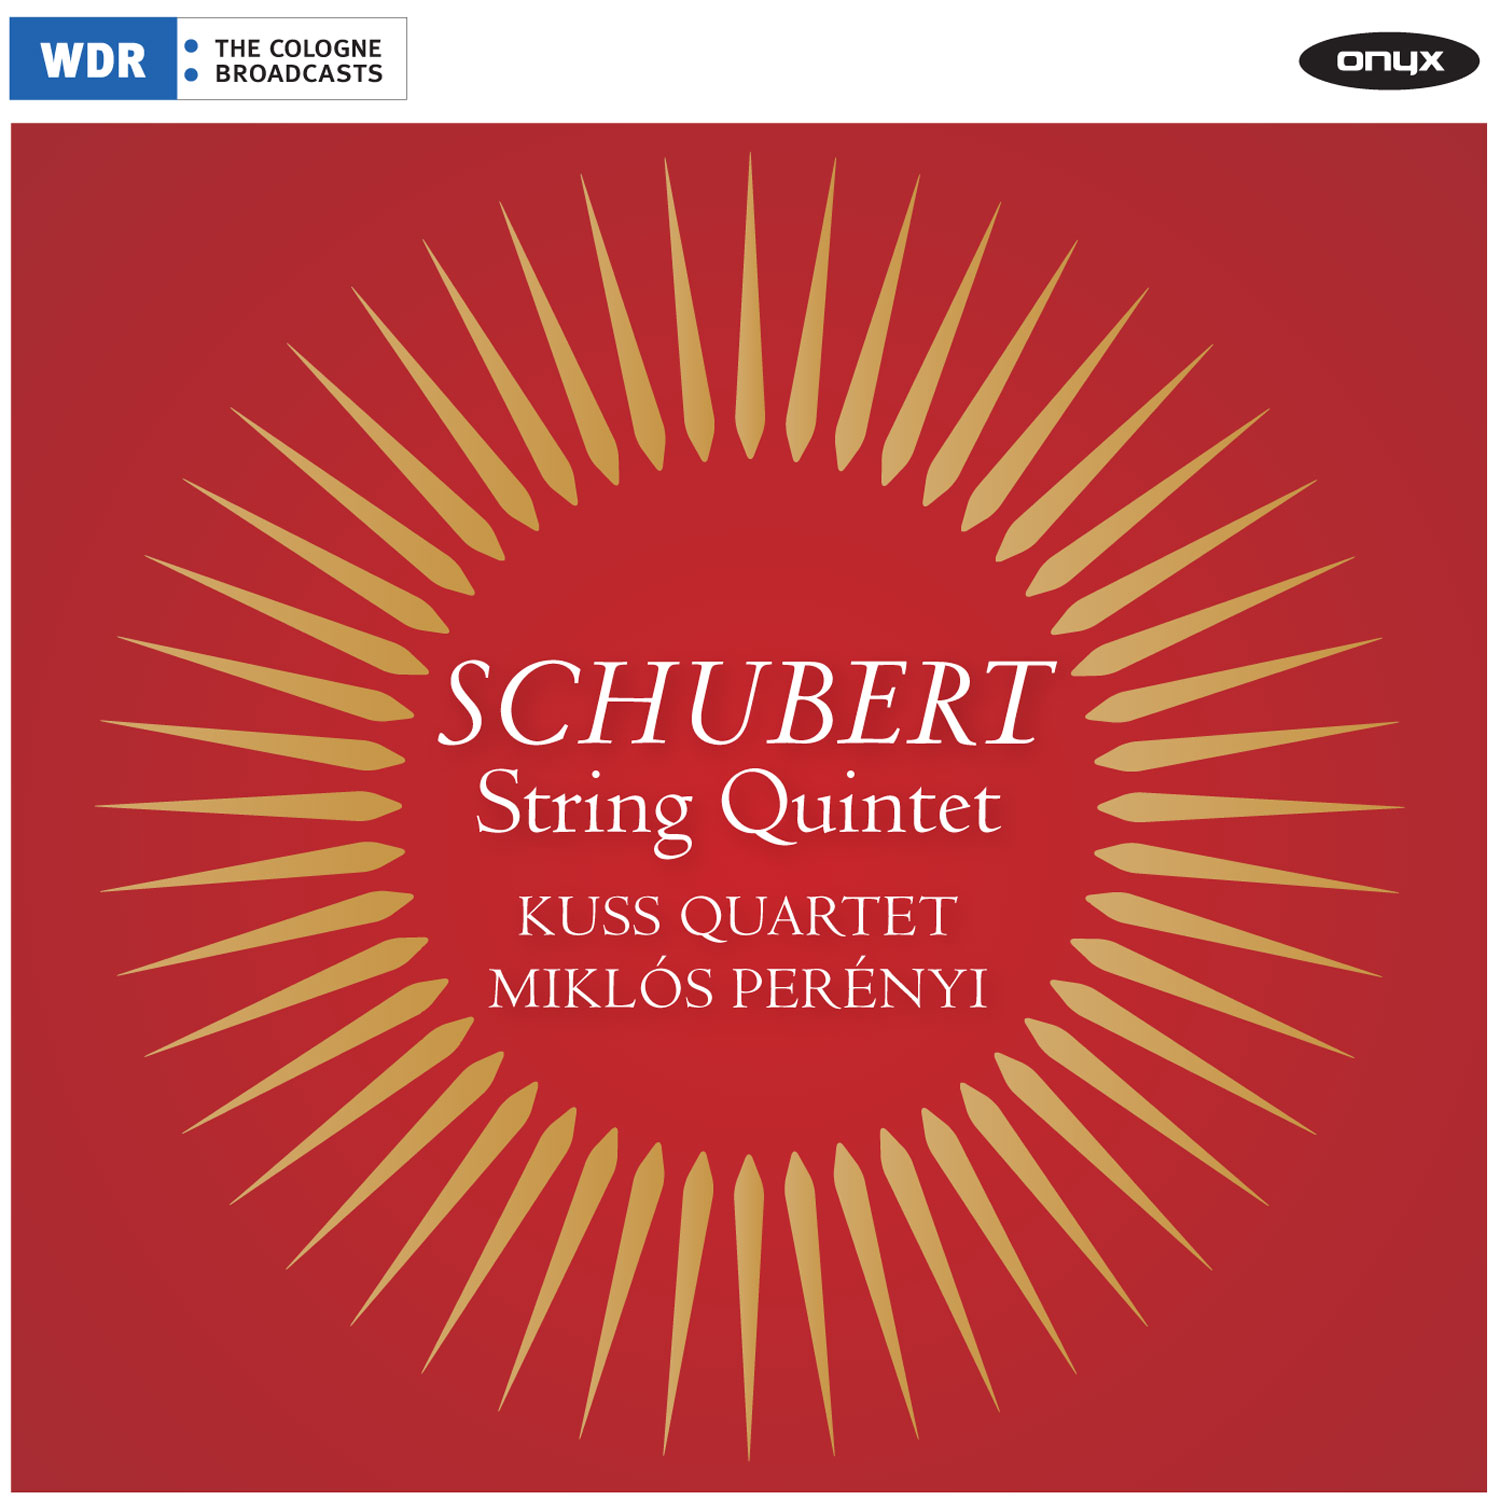 Schubert: String Quintet in C Major, D. 956